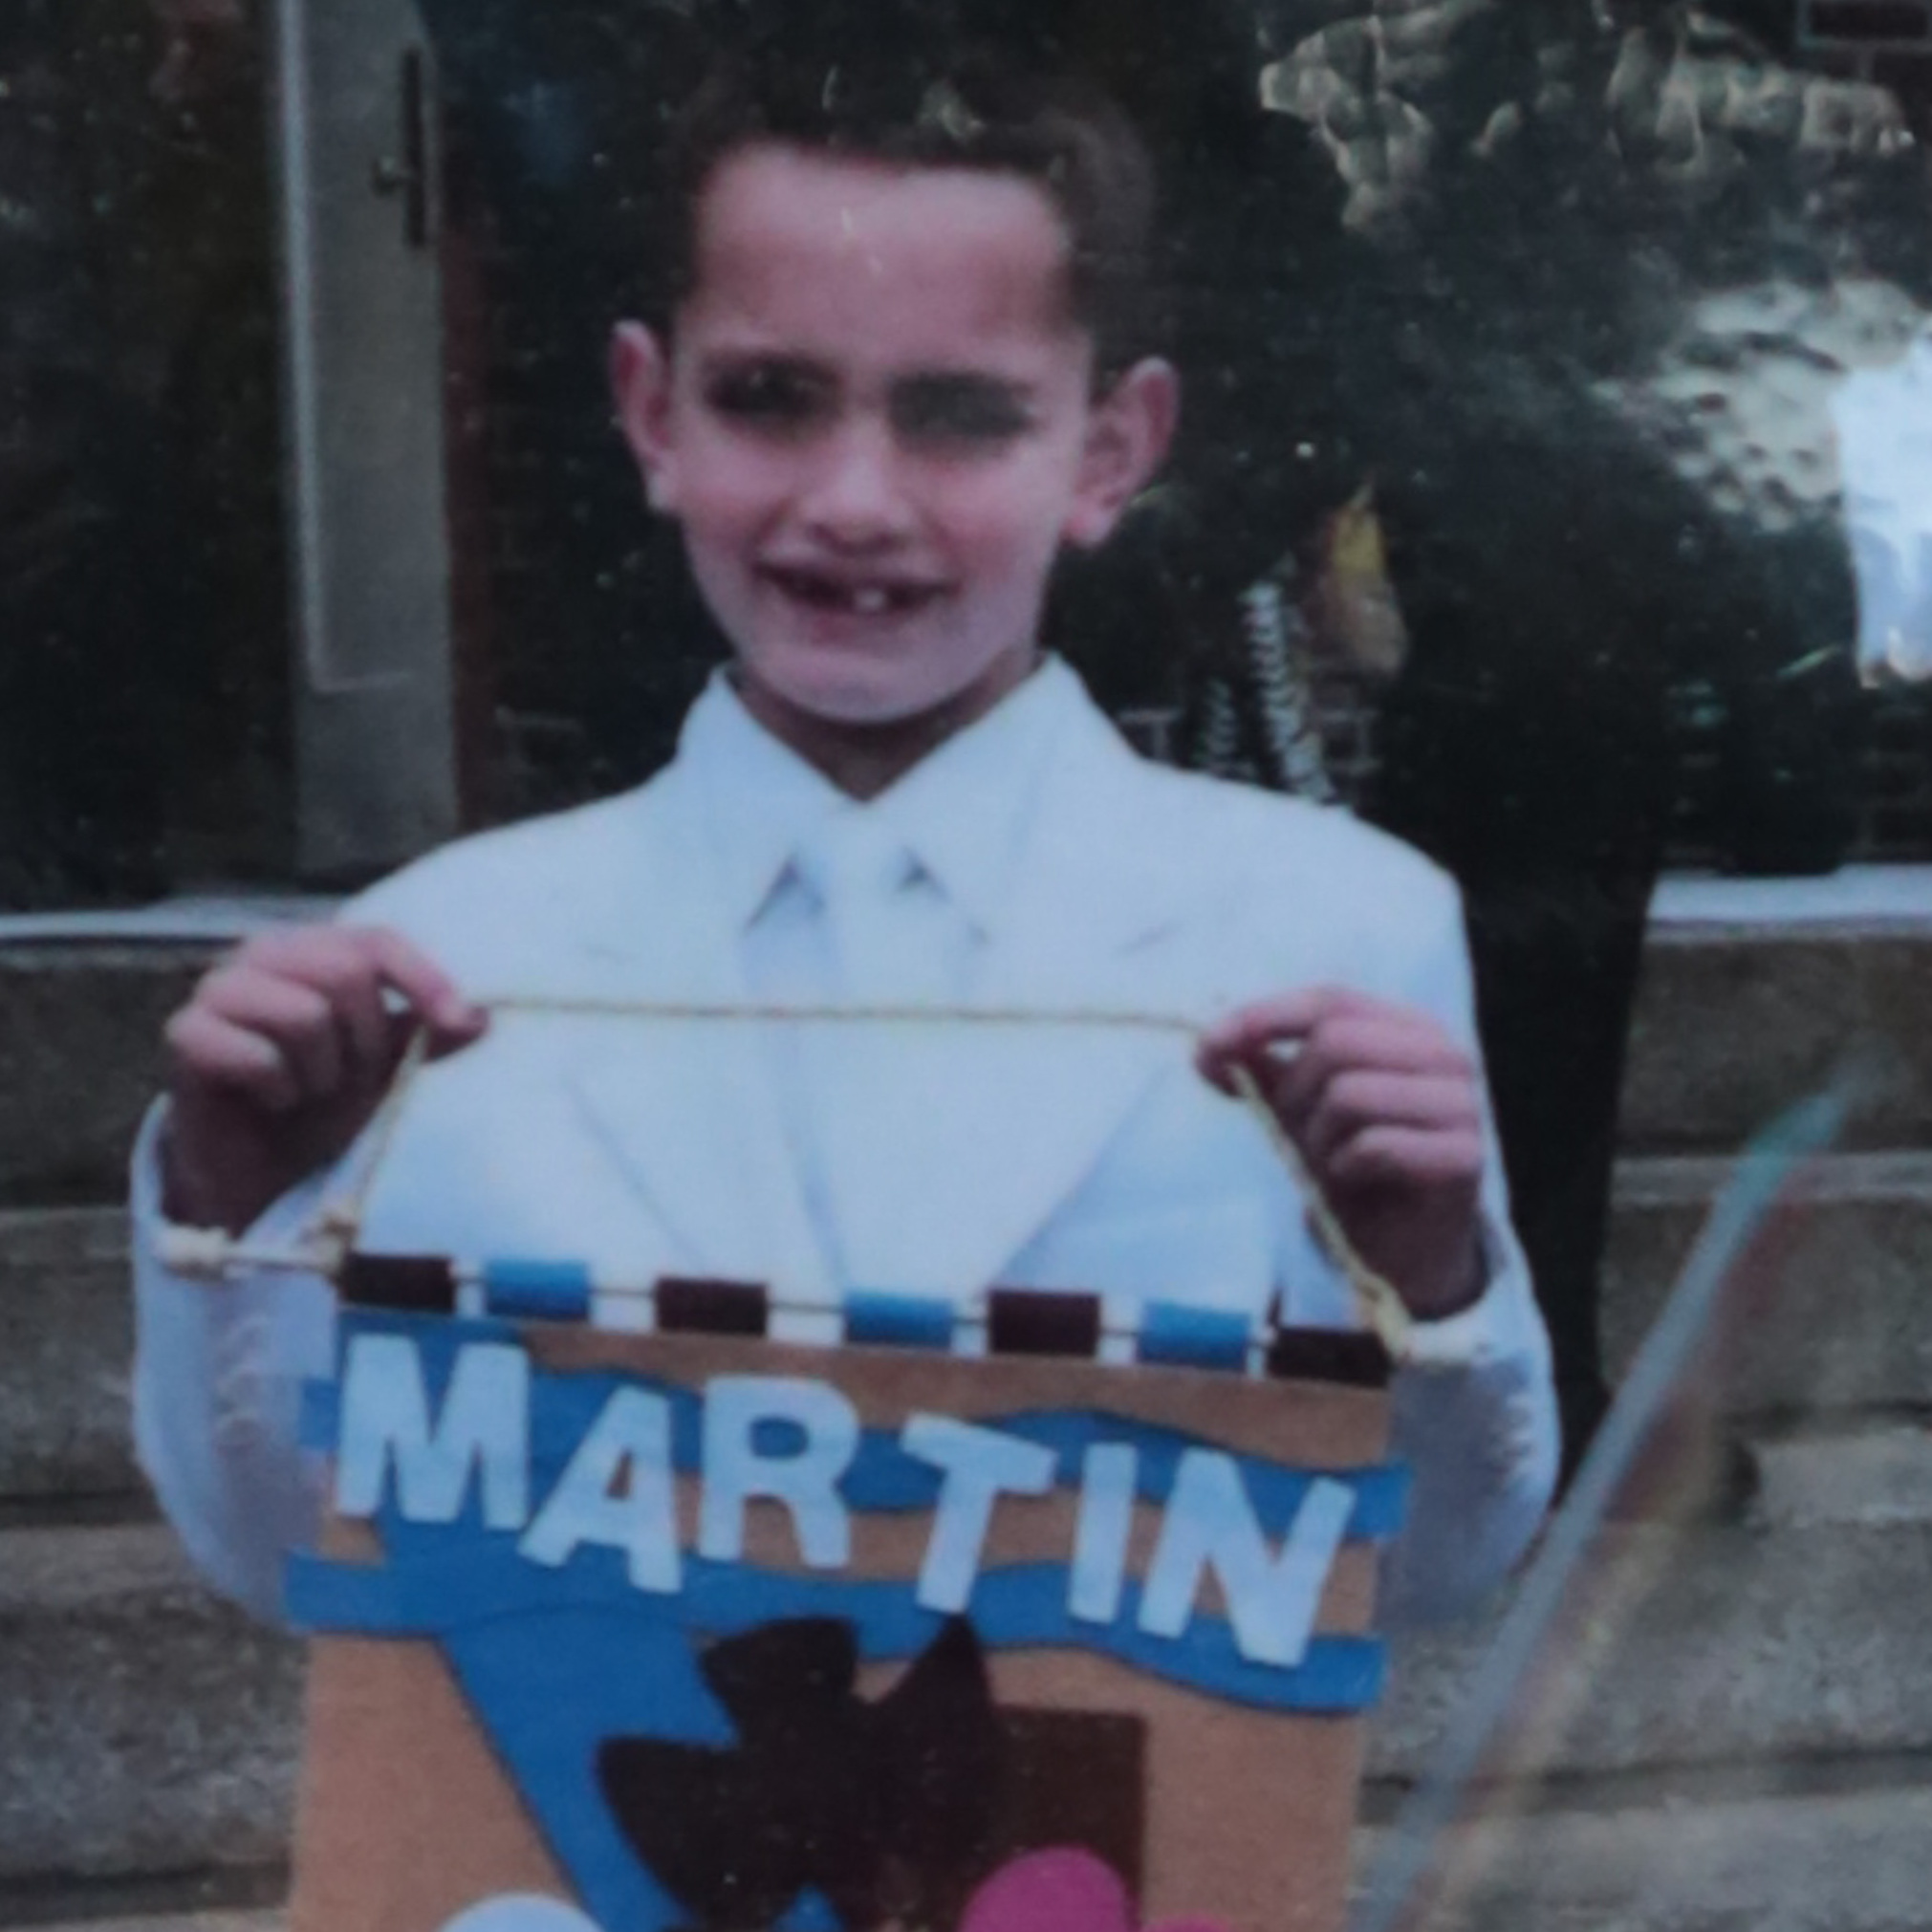 Martin Richard, 8, who was killed in the Boston Marathon bombings.